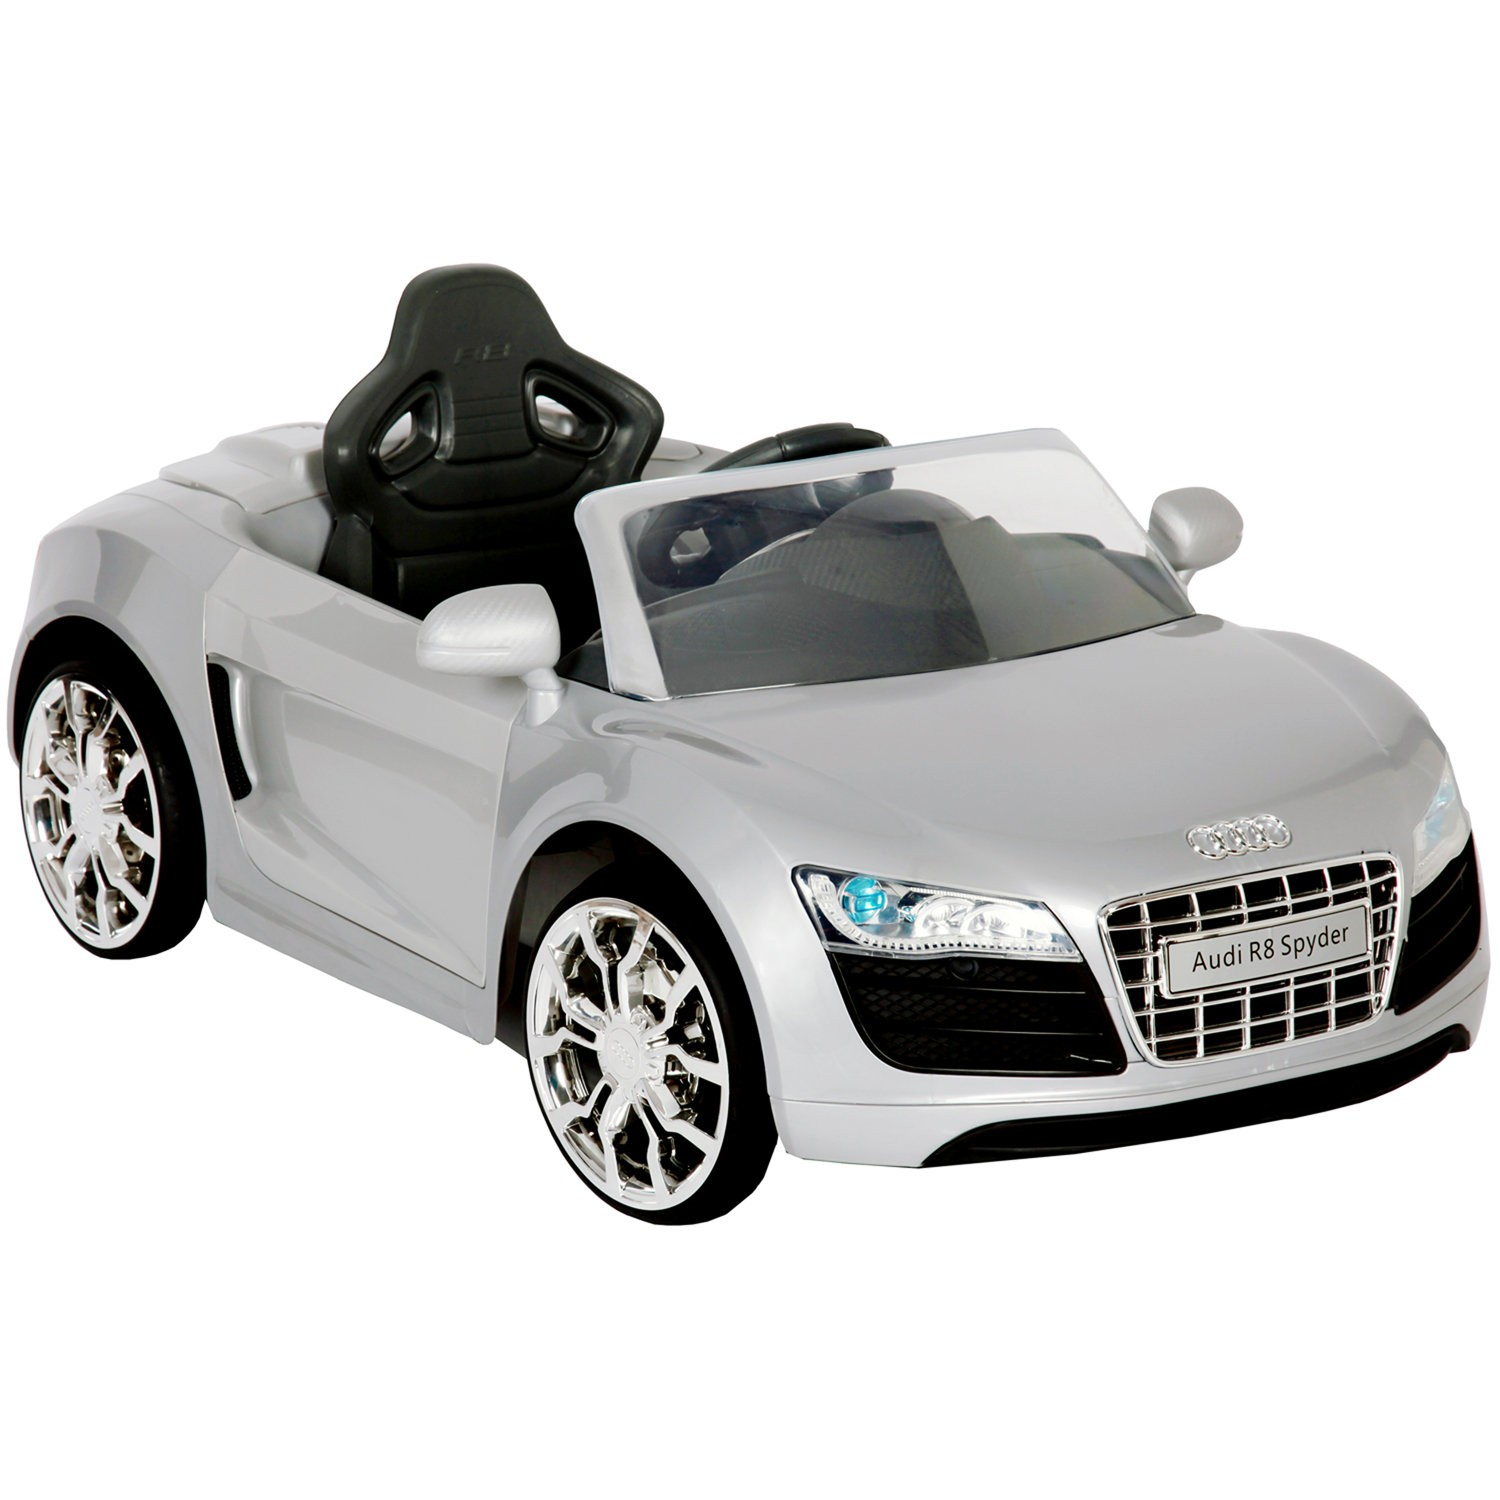 6V Audi R8 Apollo Car in Silver